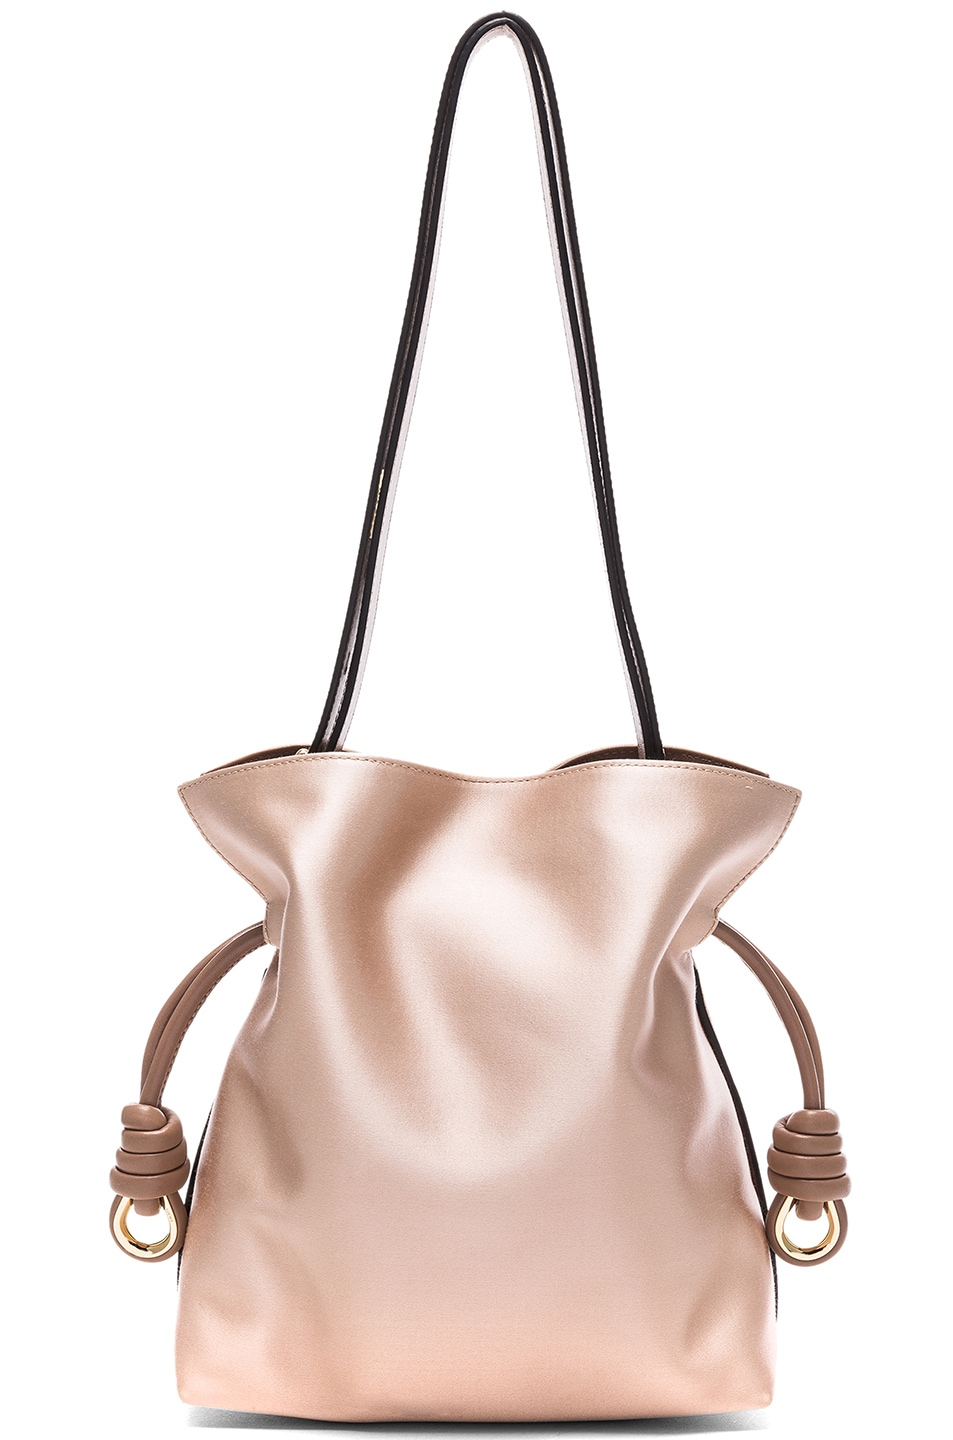 image of loewe flamenco satin knot small bag in sand u hazelnut